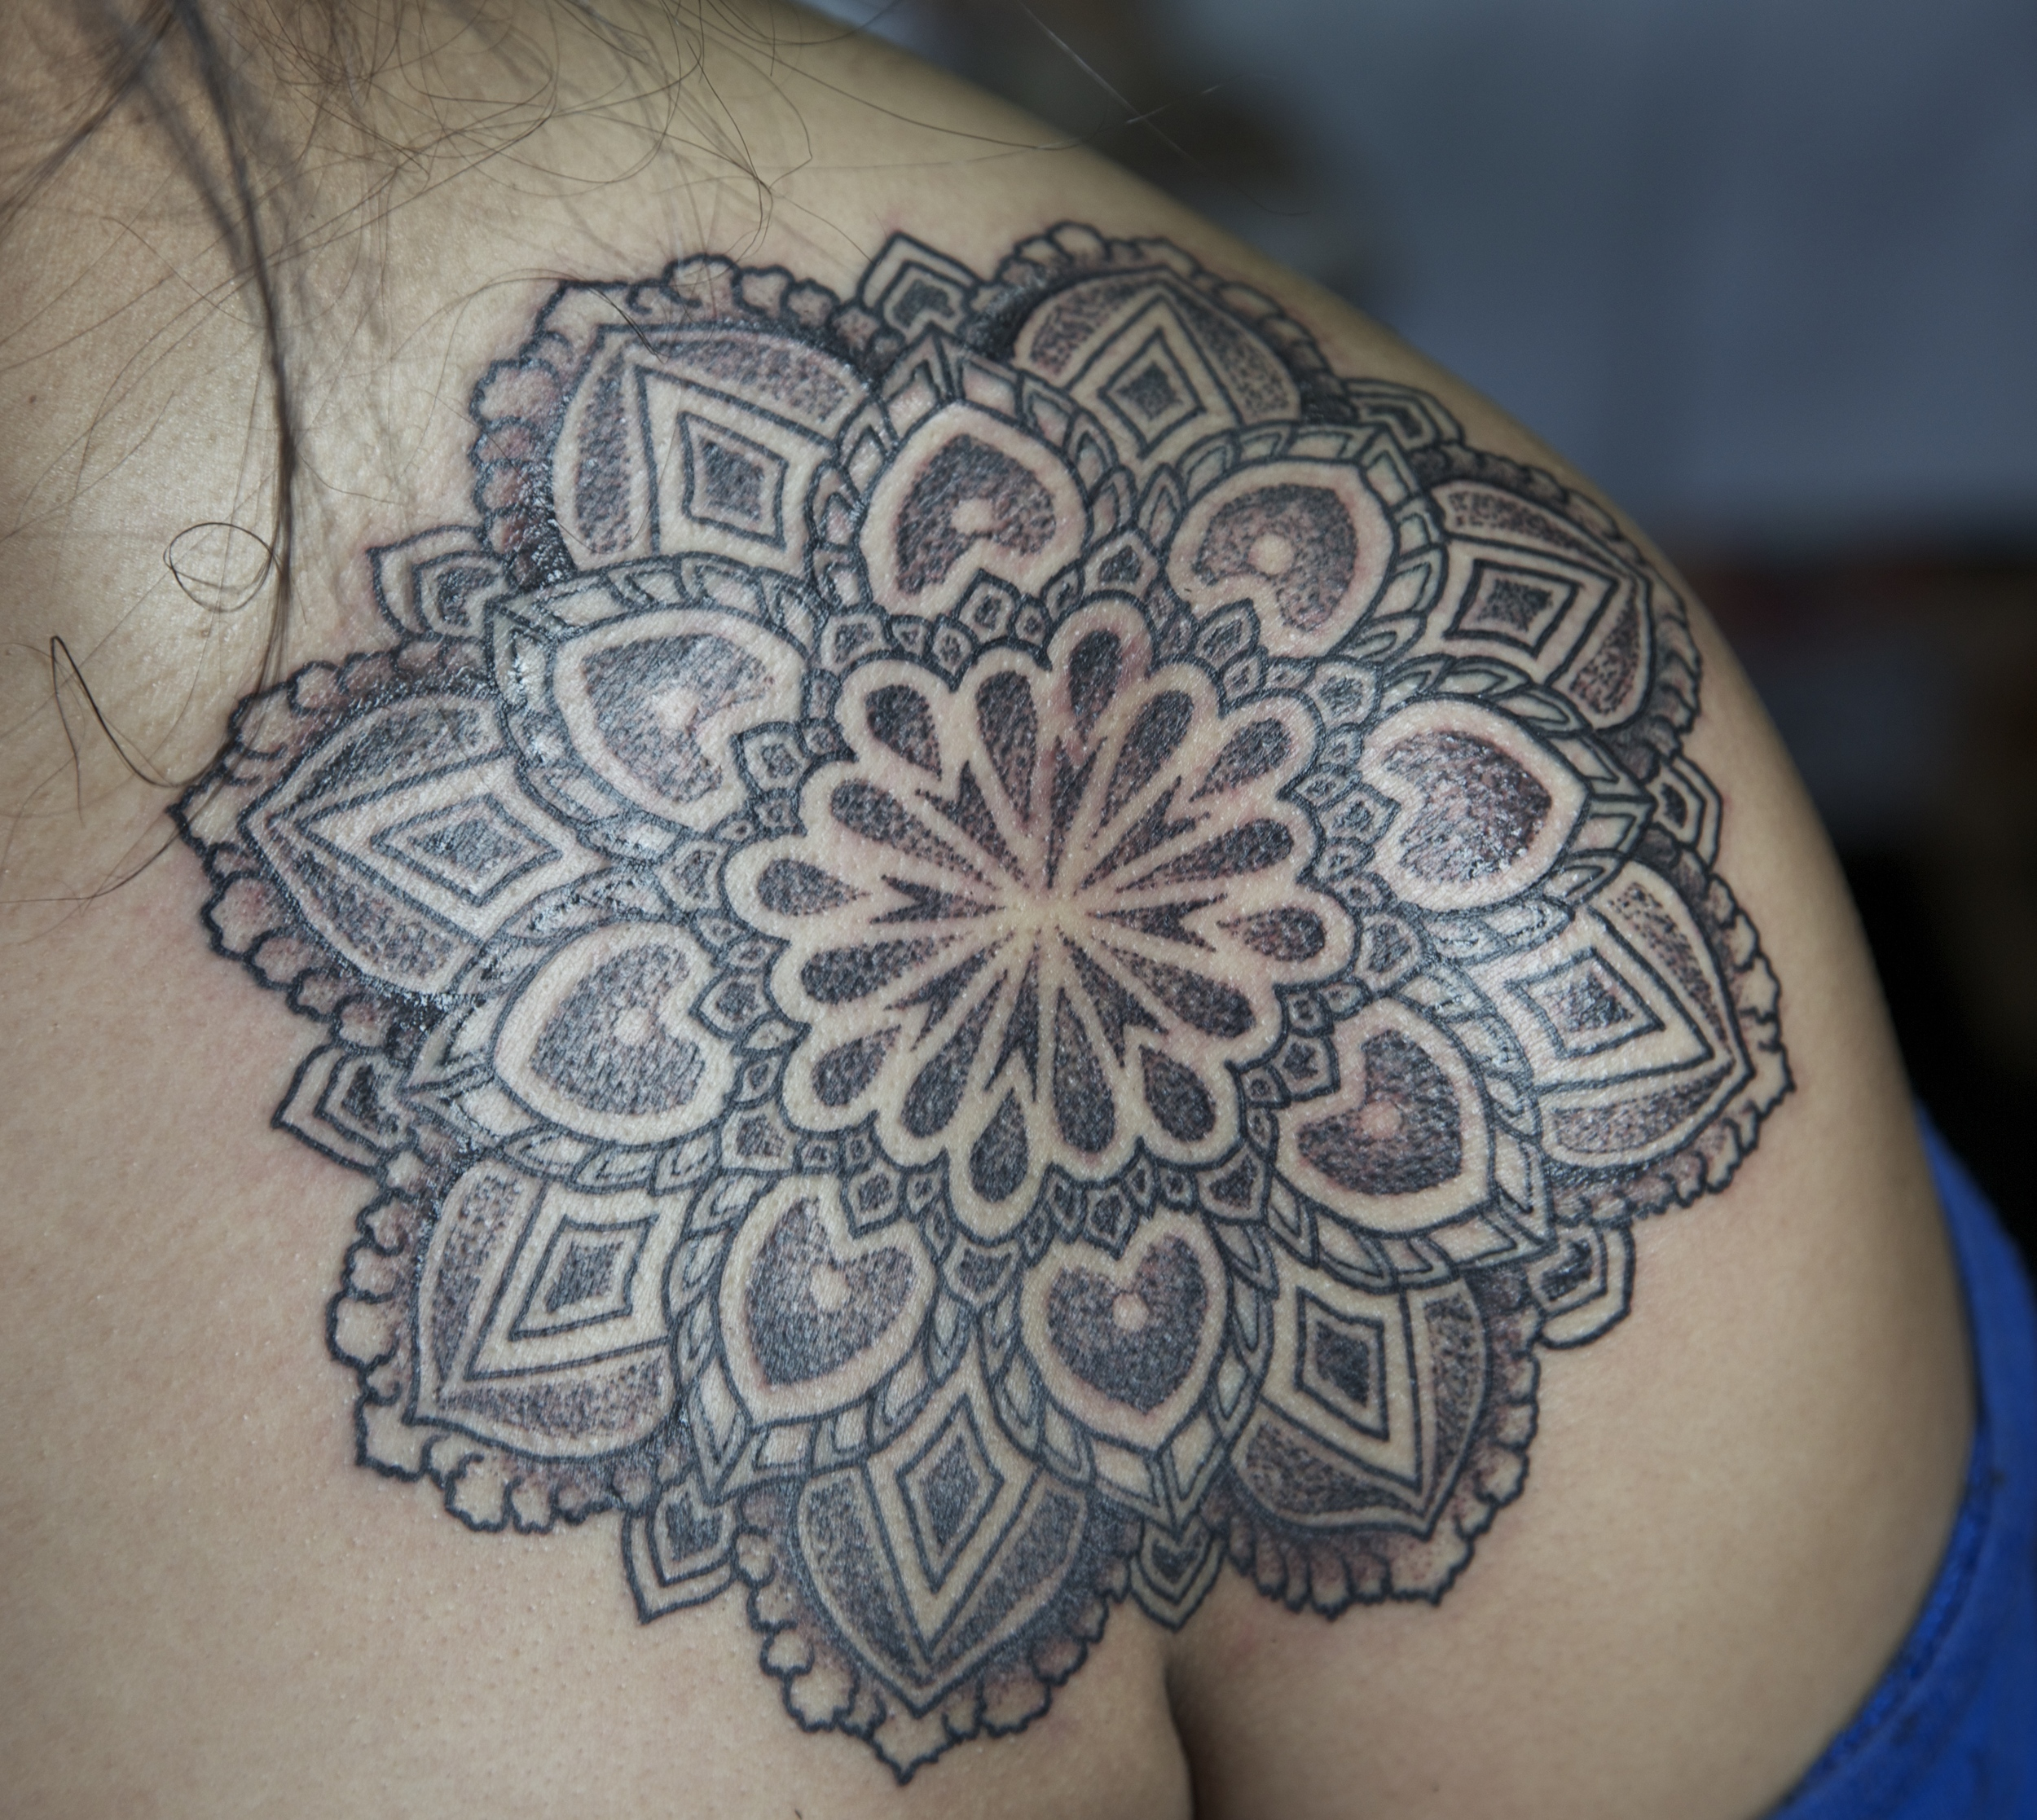 Another damn Mandala enrique bernal ejay tattoo.jpg